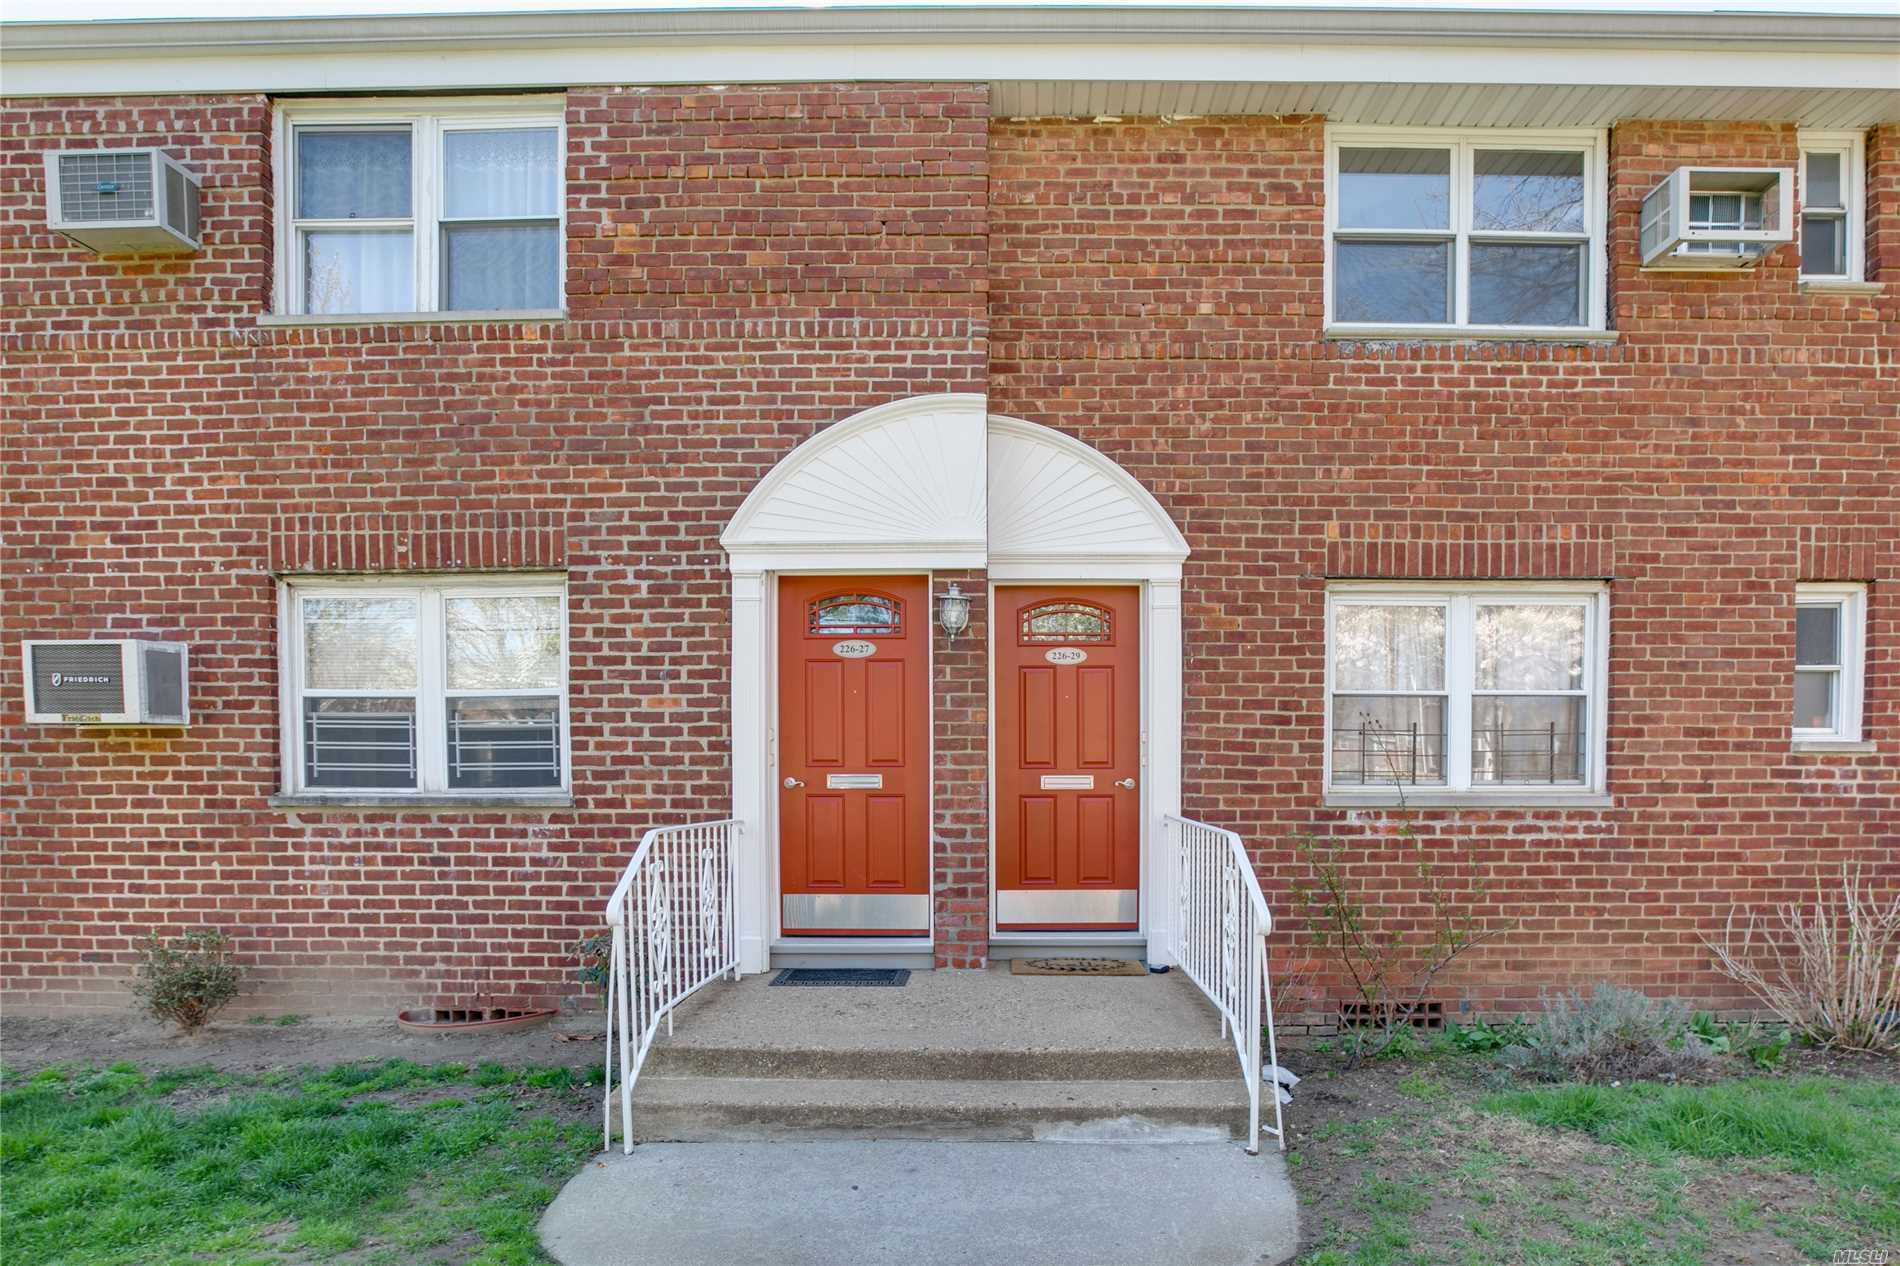 Bayside one bedroom upper unit located in desirable Alley Pond development. Excellent opportunity to homeownership featuring a spacious layout with renovated kitchen and bath, freshly painted, hardwood floors and plenty of closets. Prime location in beautiful courtyard and close access to major highways and Q46 bus. Pets Allowed!